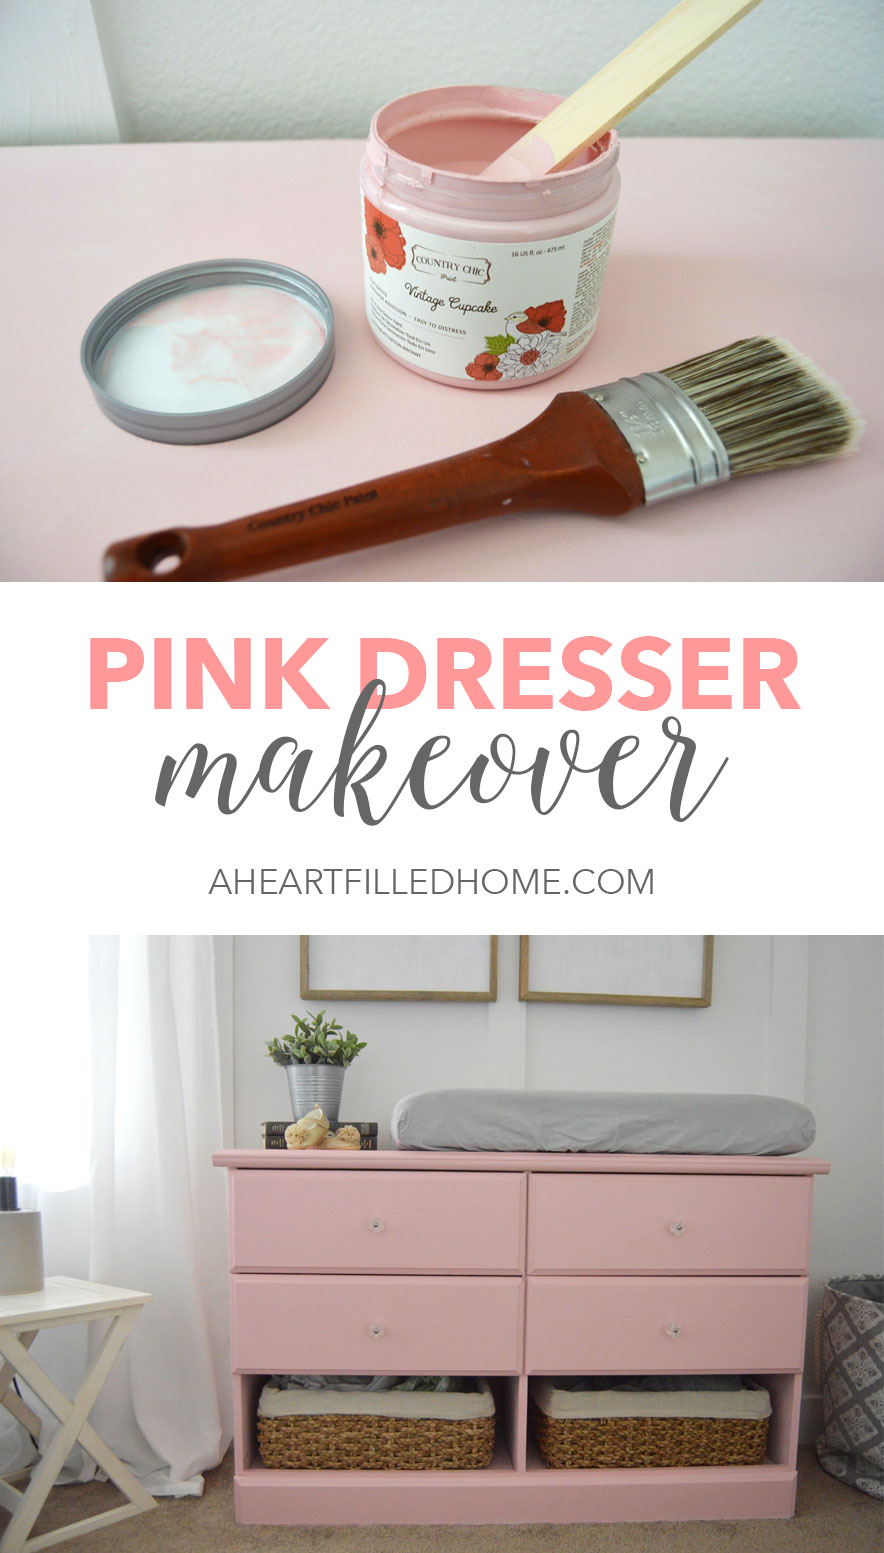 Pink Dresser Makeover - The perfect addition for a baby girl's nursery!